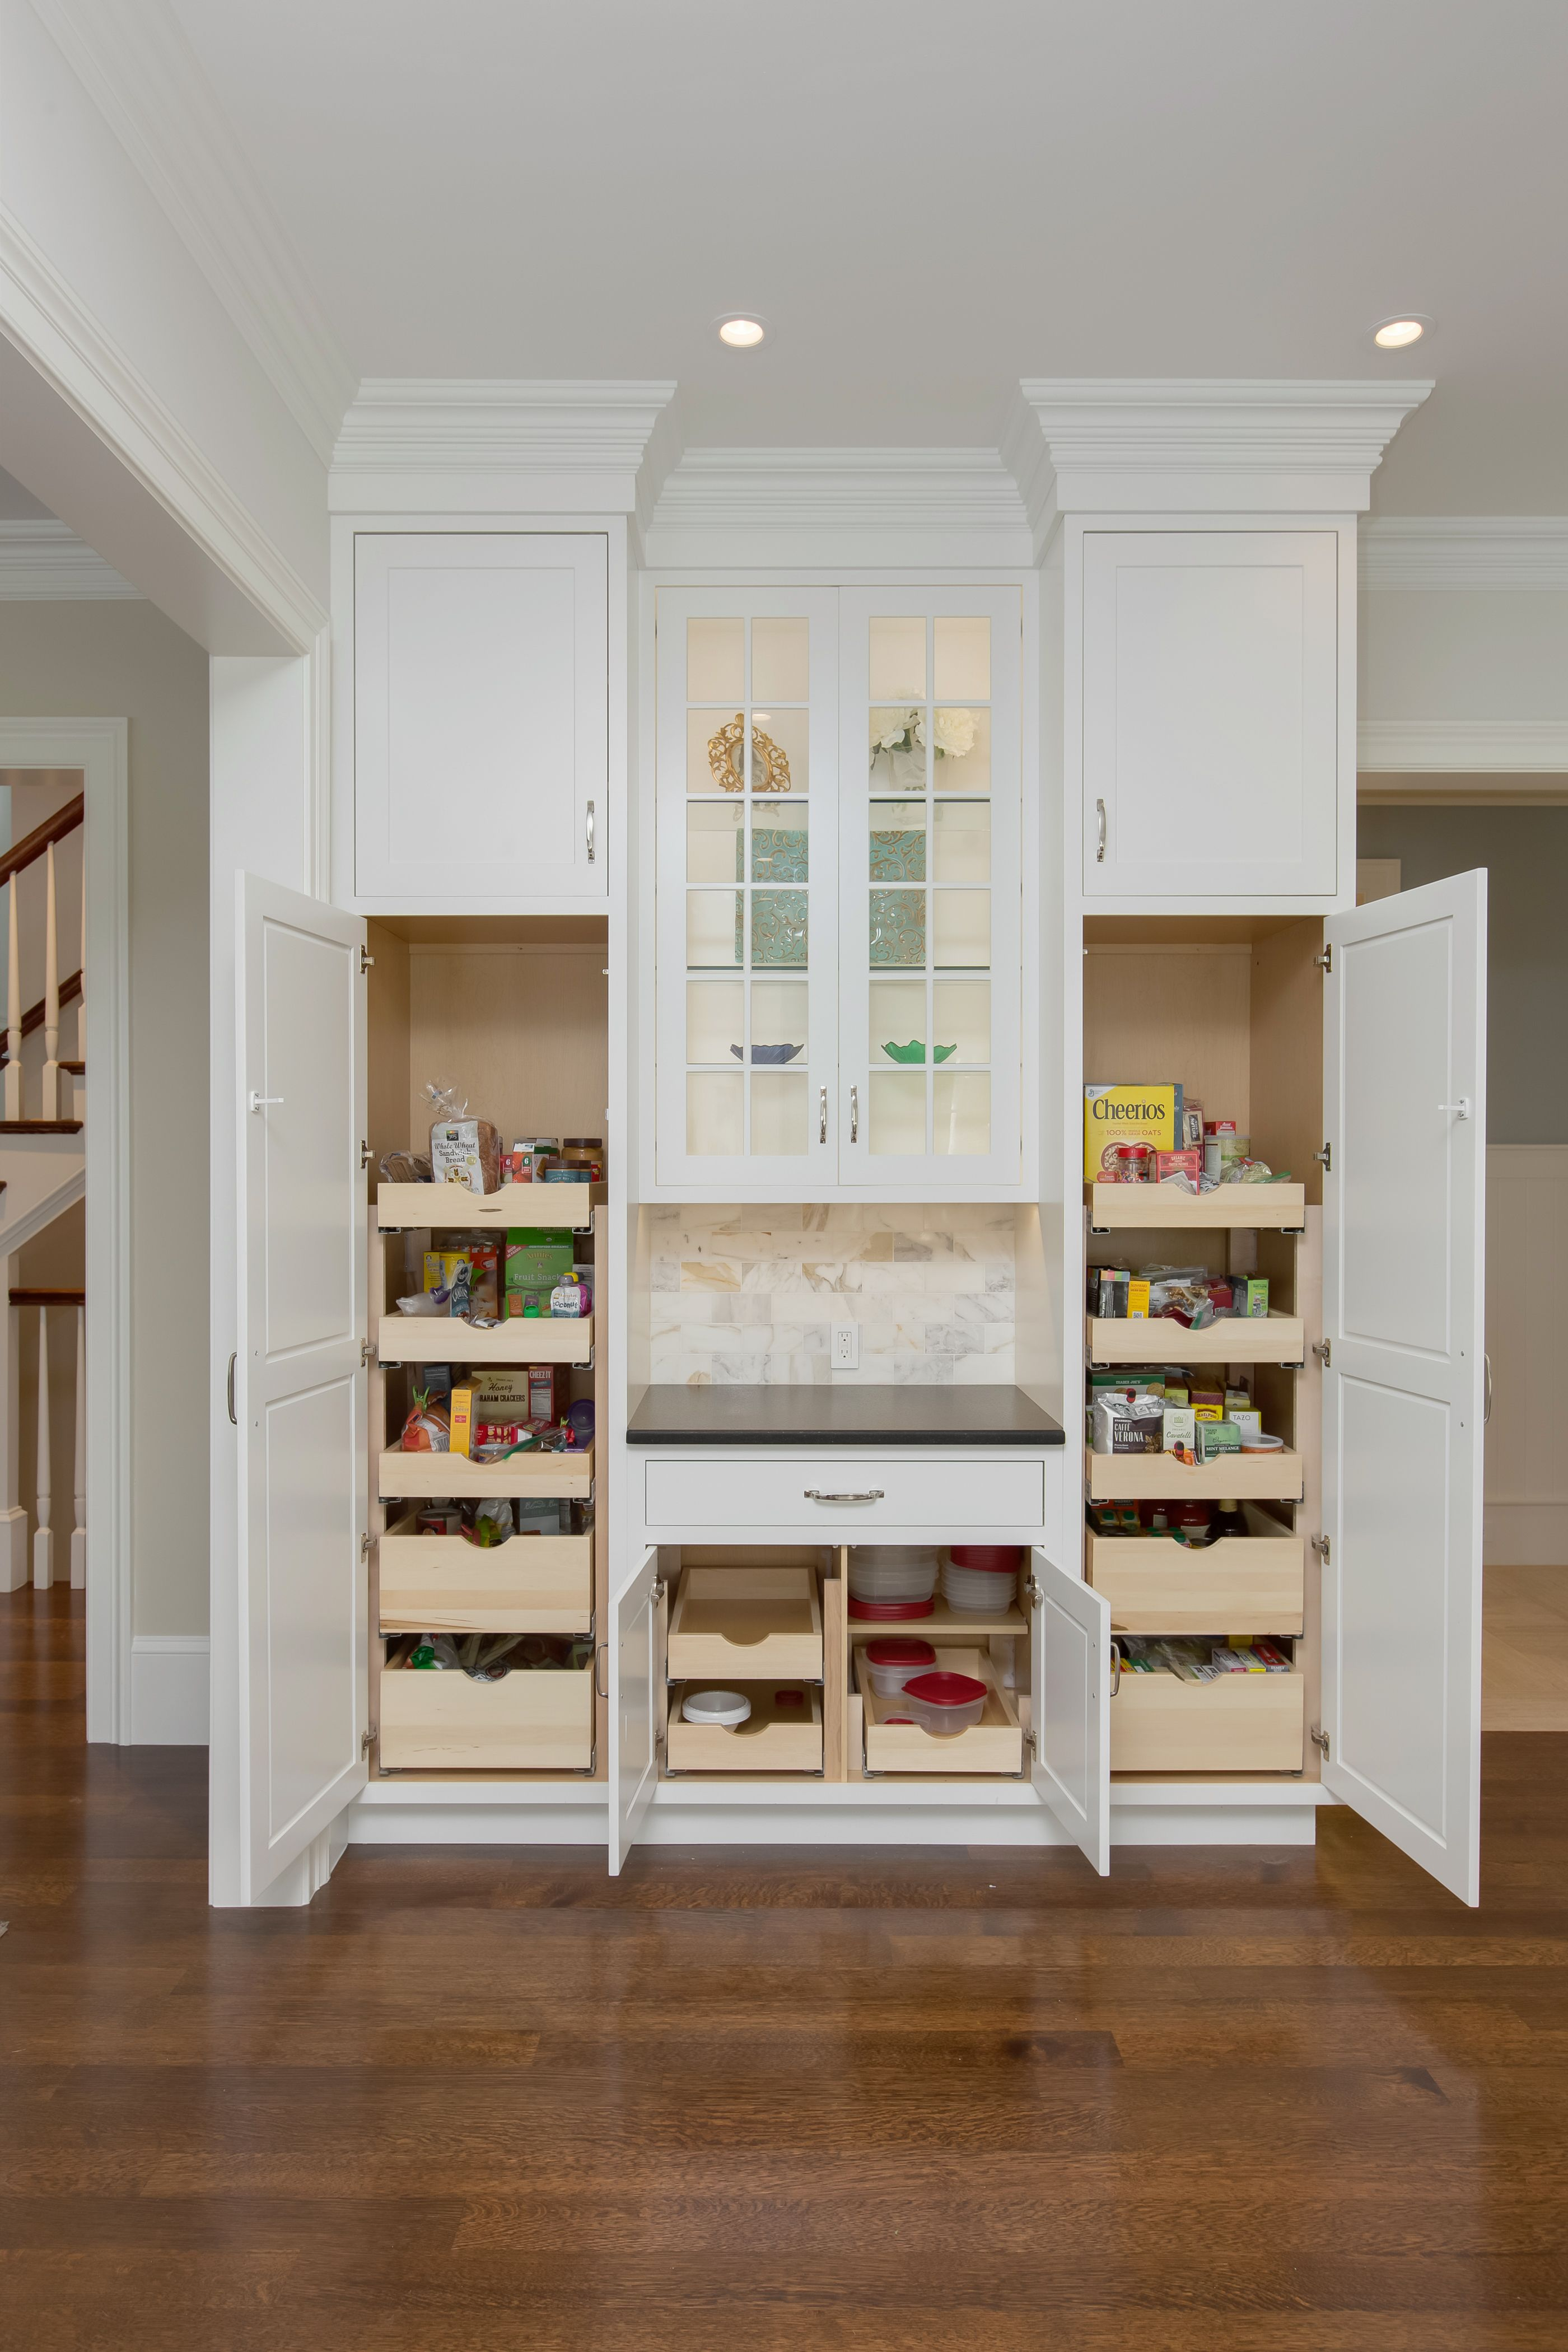 Pantry Cabinets With Pull Drawers And Crown Molding In Showplace White Kitchen